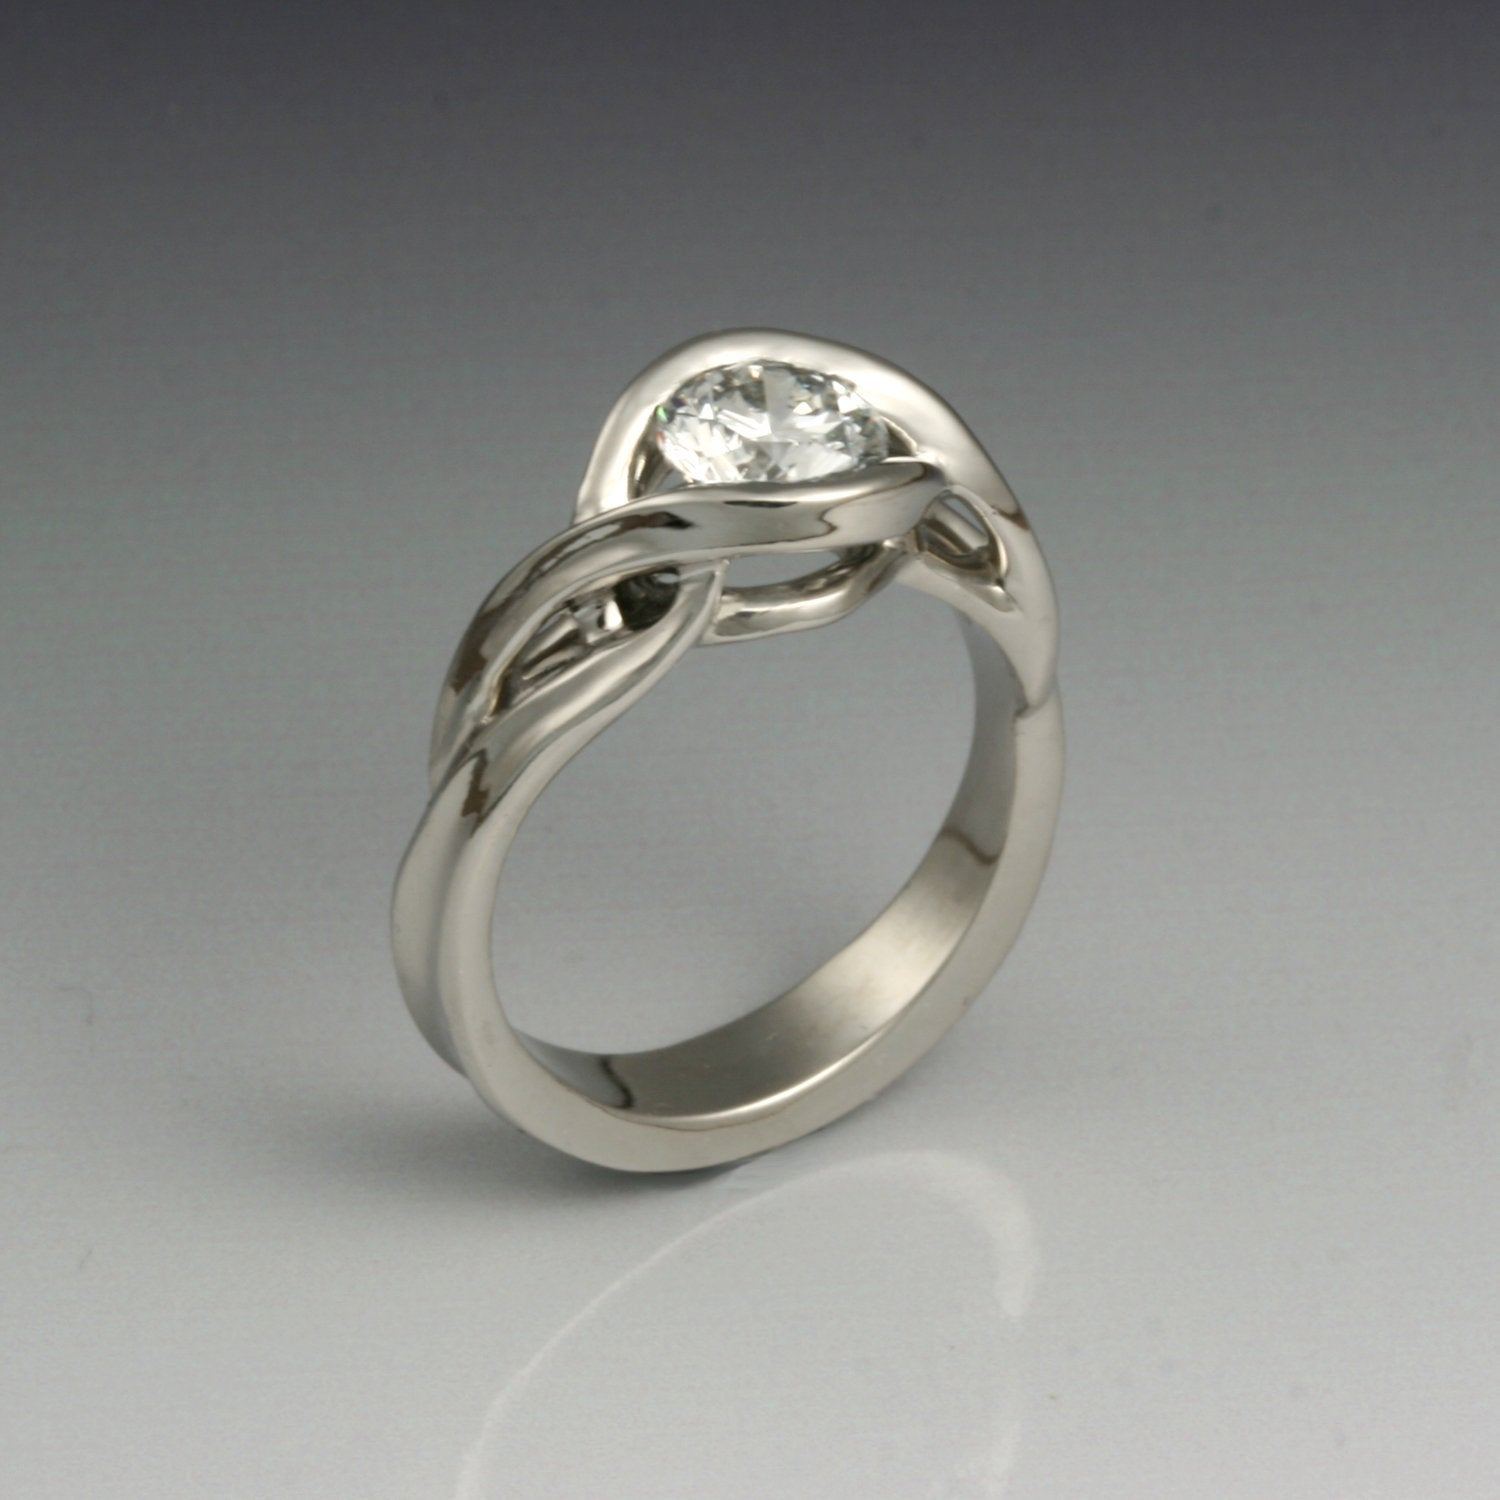 """Equinox"" Limited Edition Ring (Available in palladium with CZ, price includes setting of a new stone)"